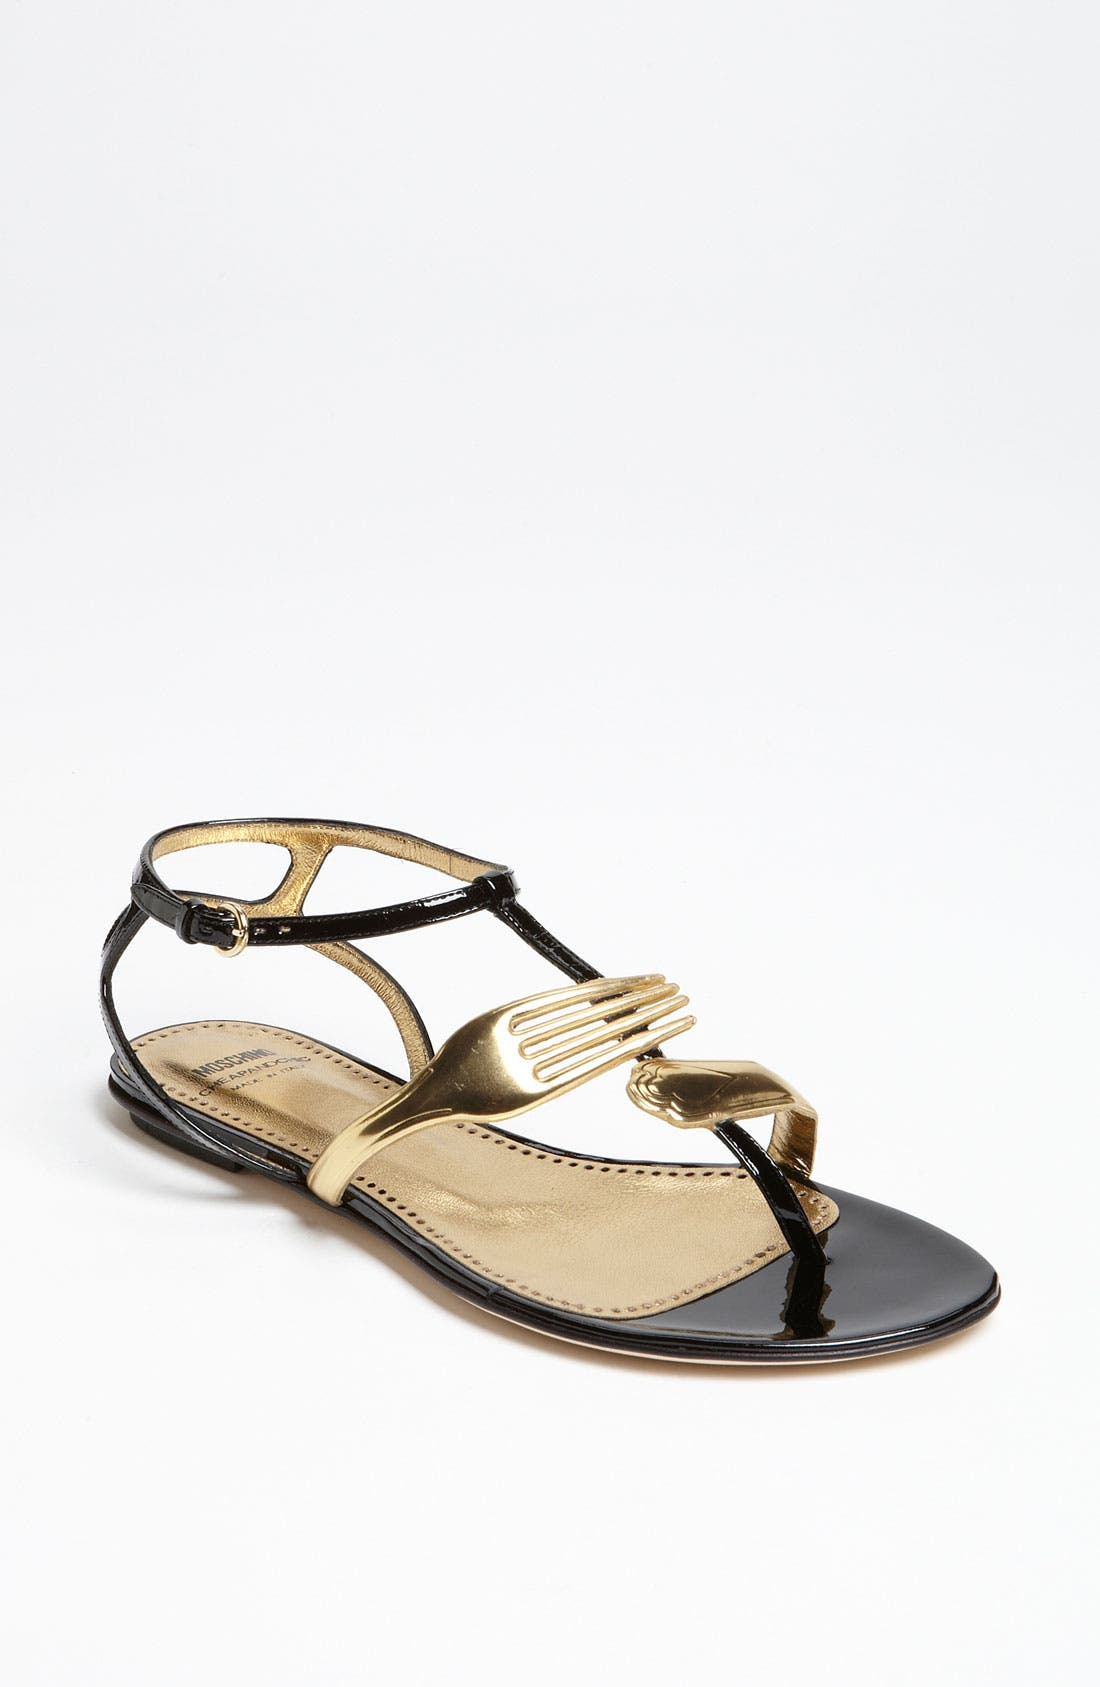 Alternate Image 1 Selected - Moschino Cheap & Chic 'Utensil' Sandal